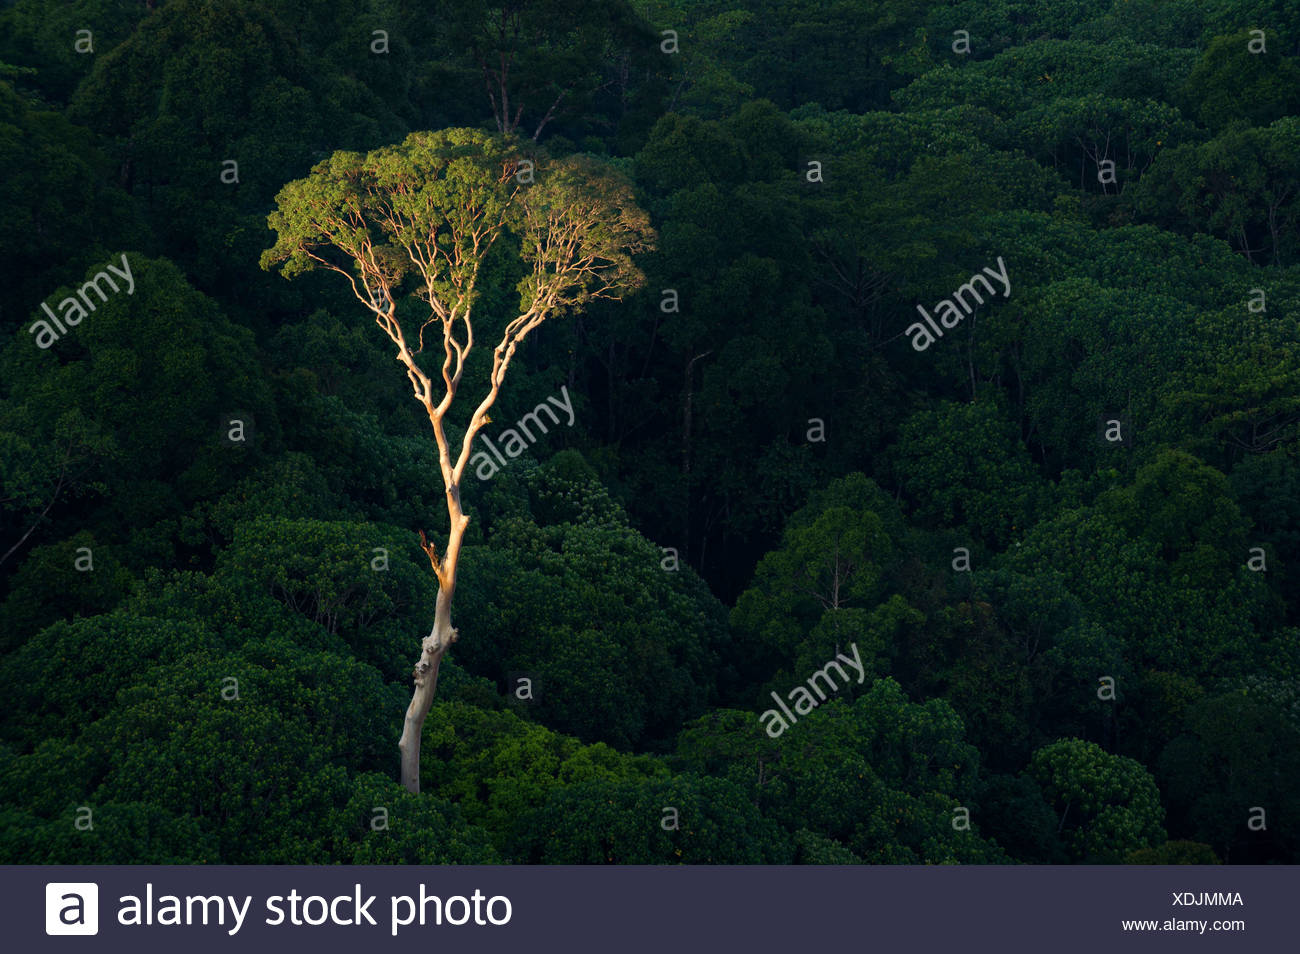 Emergent Menggaris Tree protruding the canopy of lowland Dipterocarp rainforest. Heart of Danum Valley, Sabah, Borneo. - Stock Image